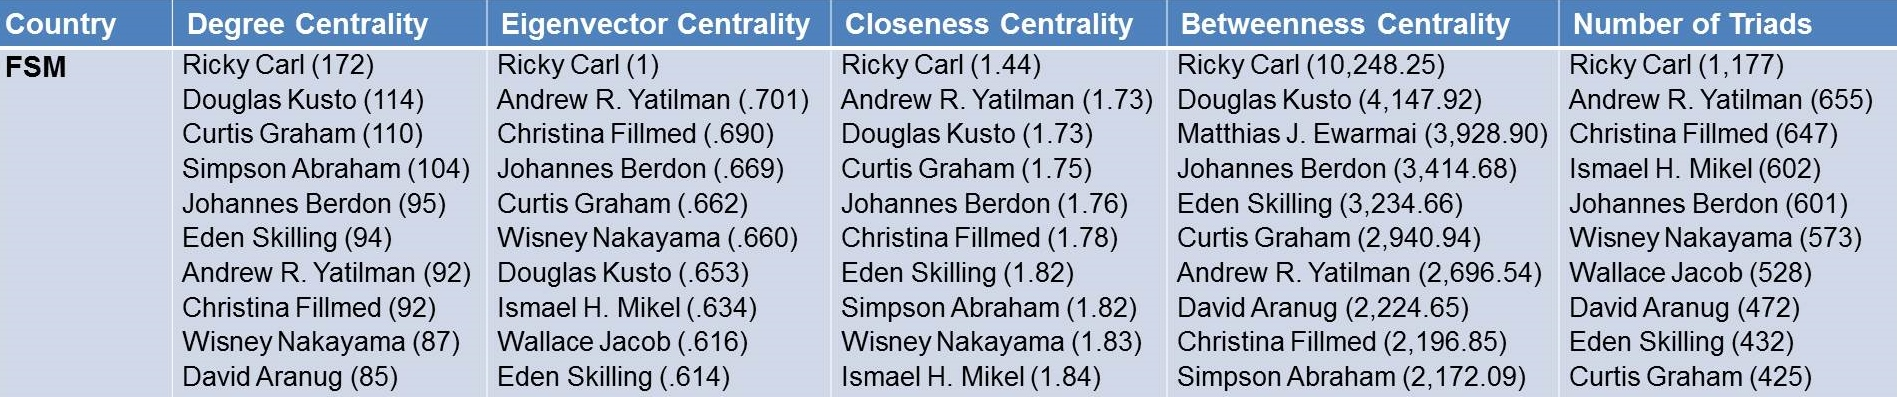 FSM Centrality Table